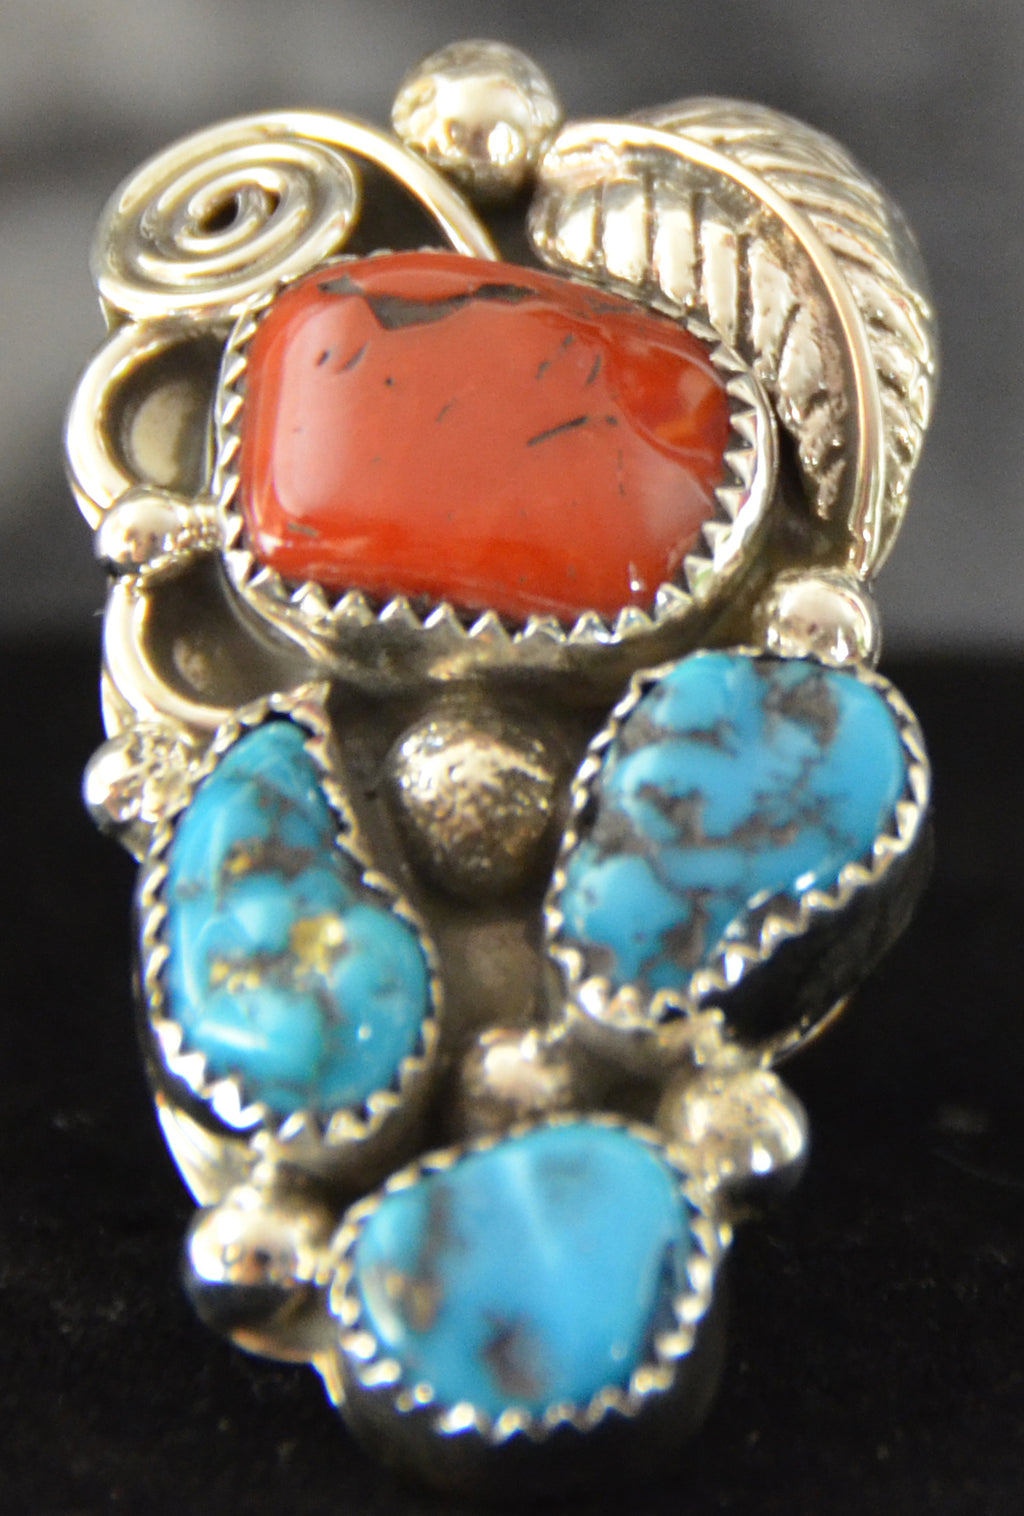 Native American Jewelry : Navajo : Ring : Turquoise and Coral : Kenneth Largo : NAJ- 1R - Getzwiller's Nizhoni Ranch Gallery